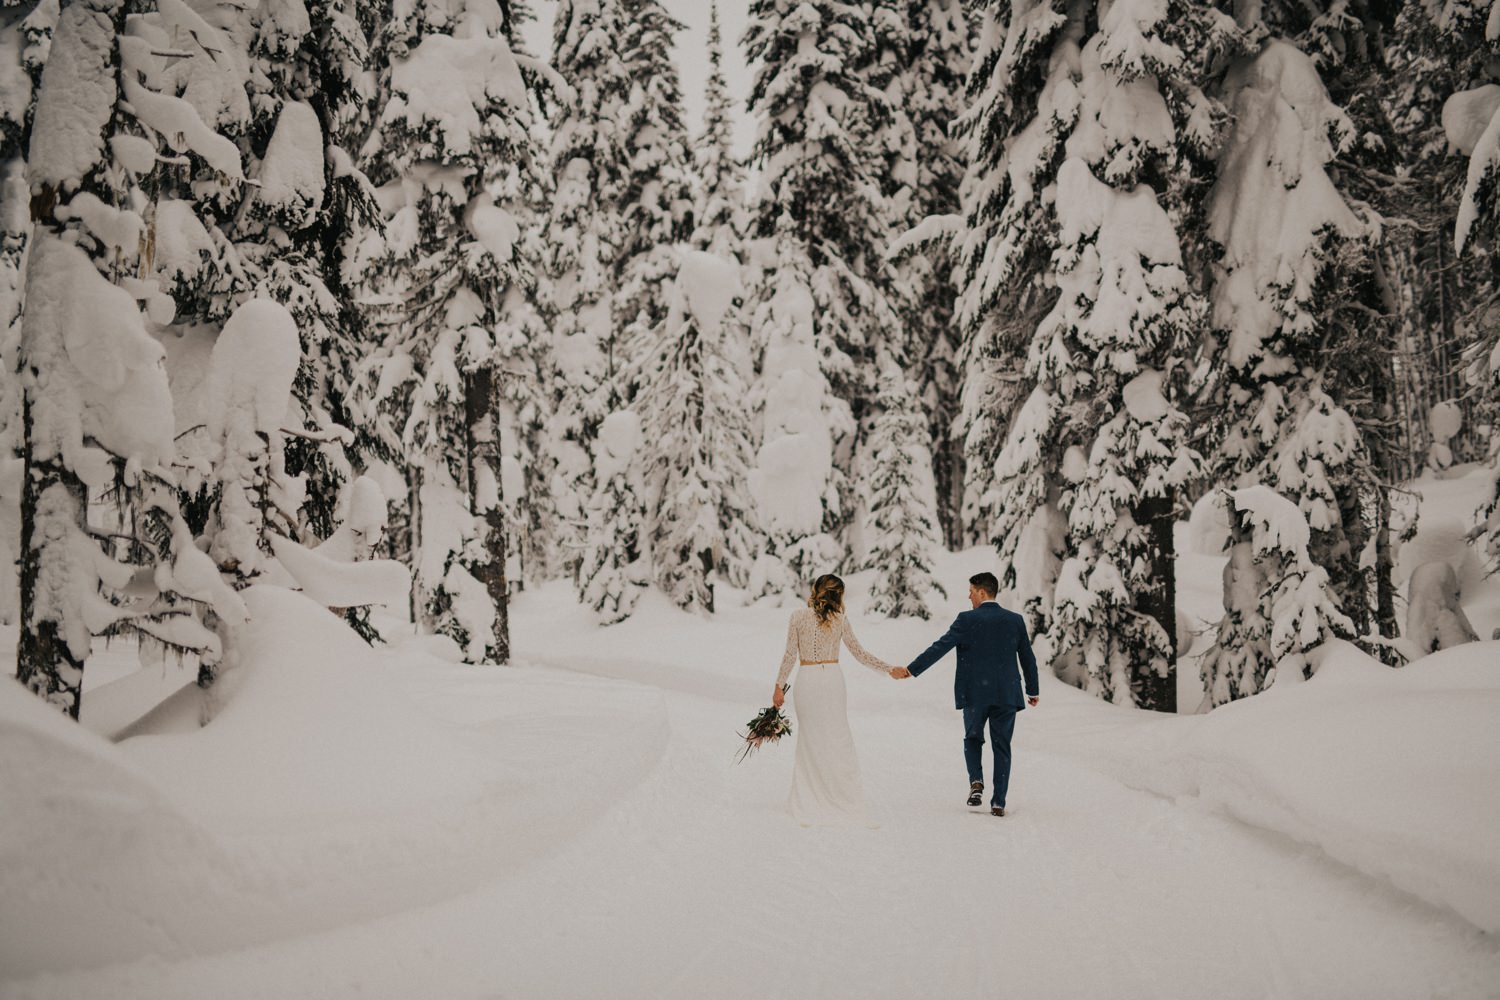 Okanagan Winter Elopement - Joelsview Photography_0110